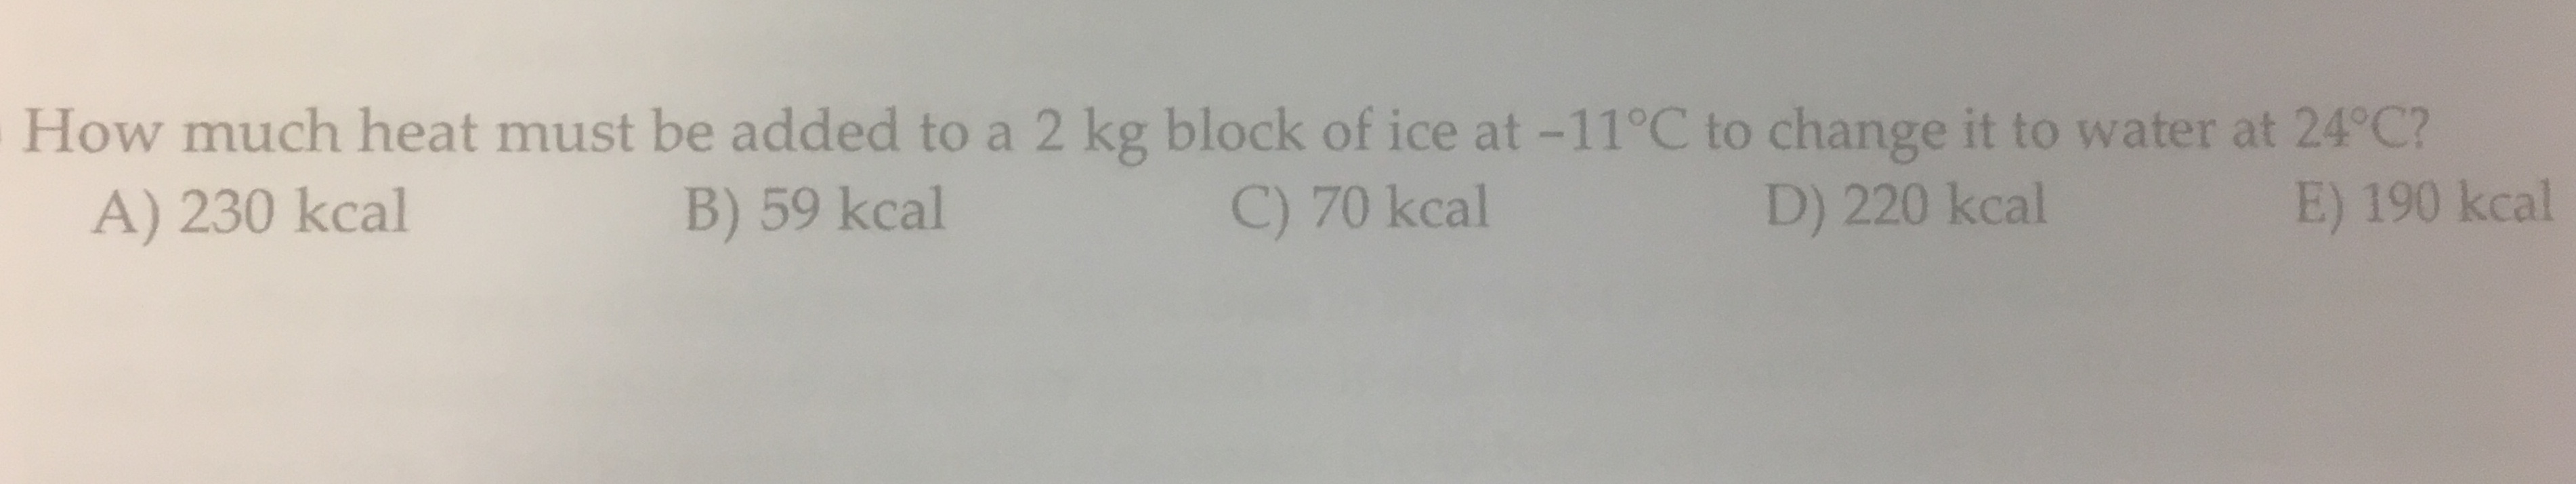 How much heat must be added to a 2 kg block of ice at -11°C to change it to water at 24°C? A) 230 kcal B) 59 kcal C) 70 kcal D) 220 kcal E) 190 kcal